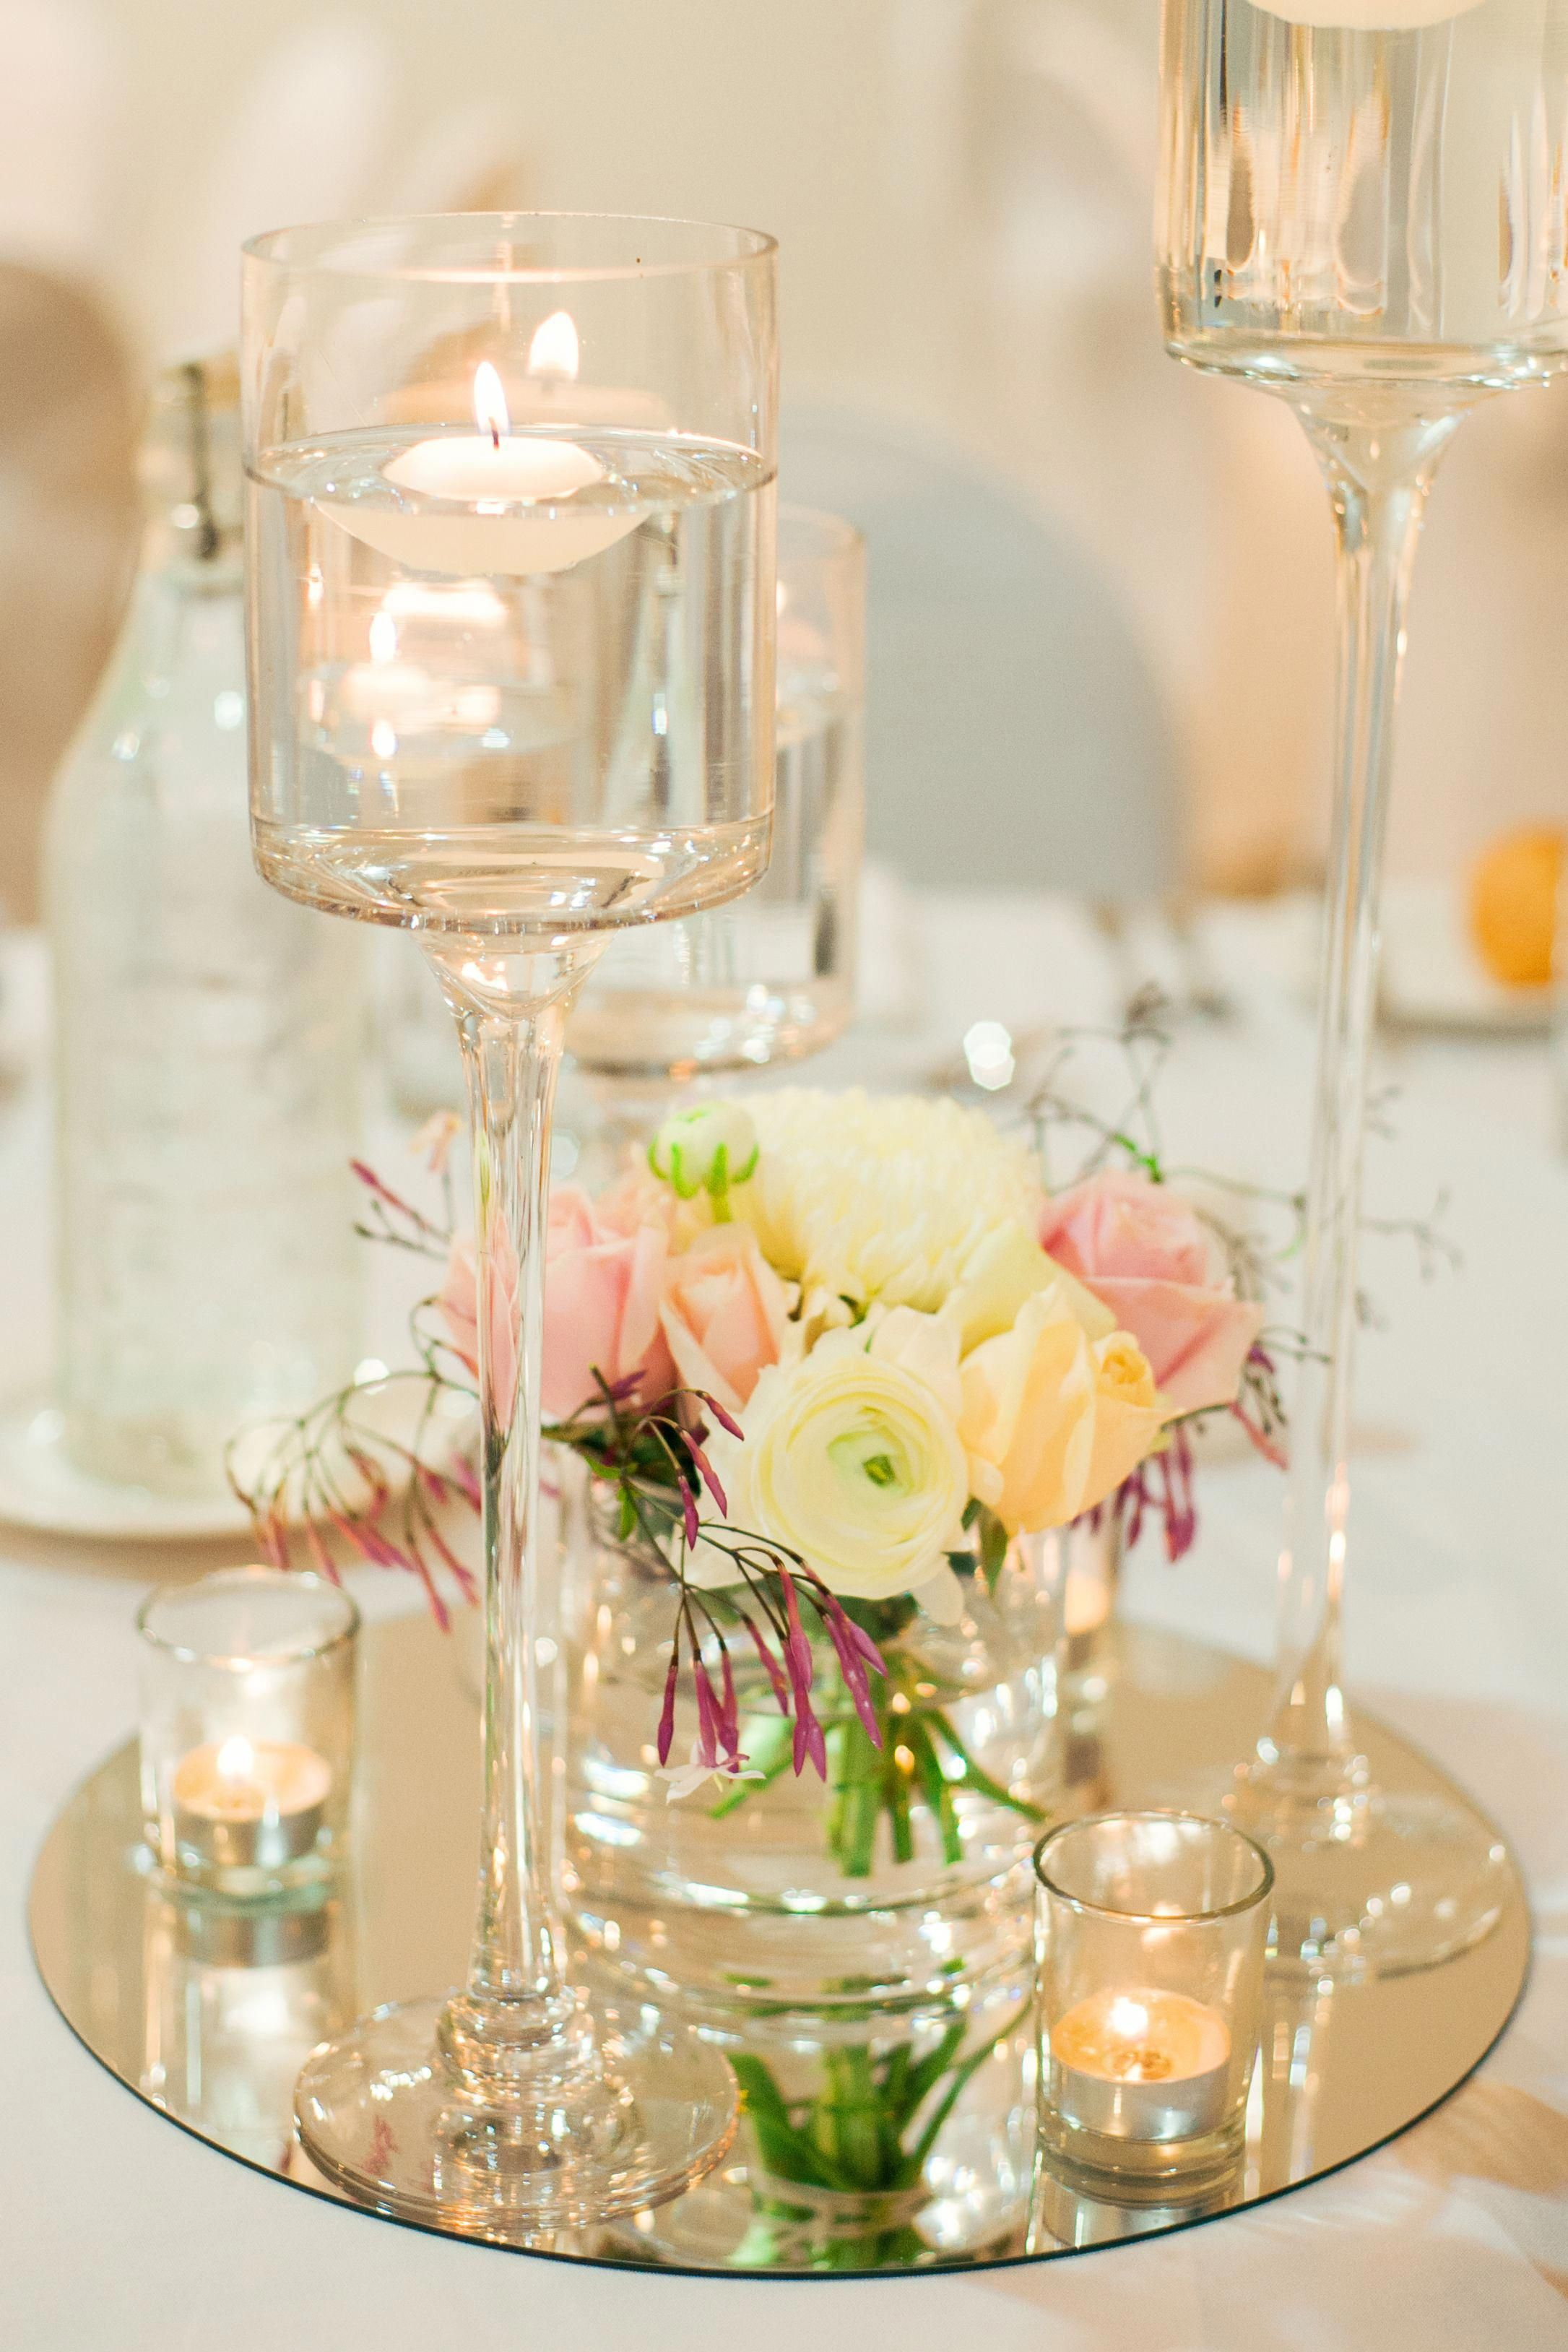 How Do You Utilize Floating Candles Wonderful Ideas For Wedding Events Incidents Generating Magnificent Focal Points Candle Wedding Centerpieces Floating Candle Centerpieces Wedding Table Decorations